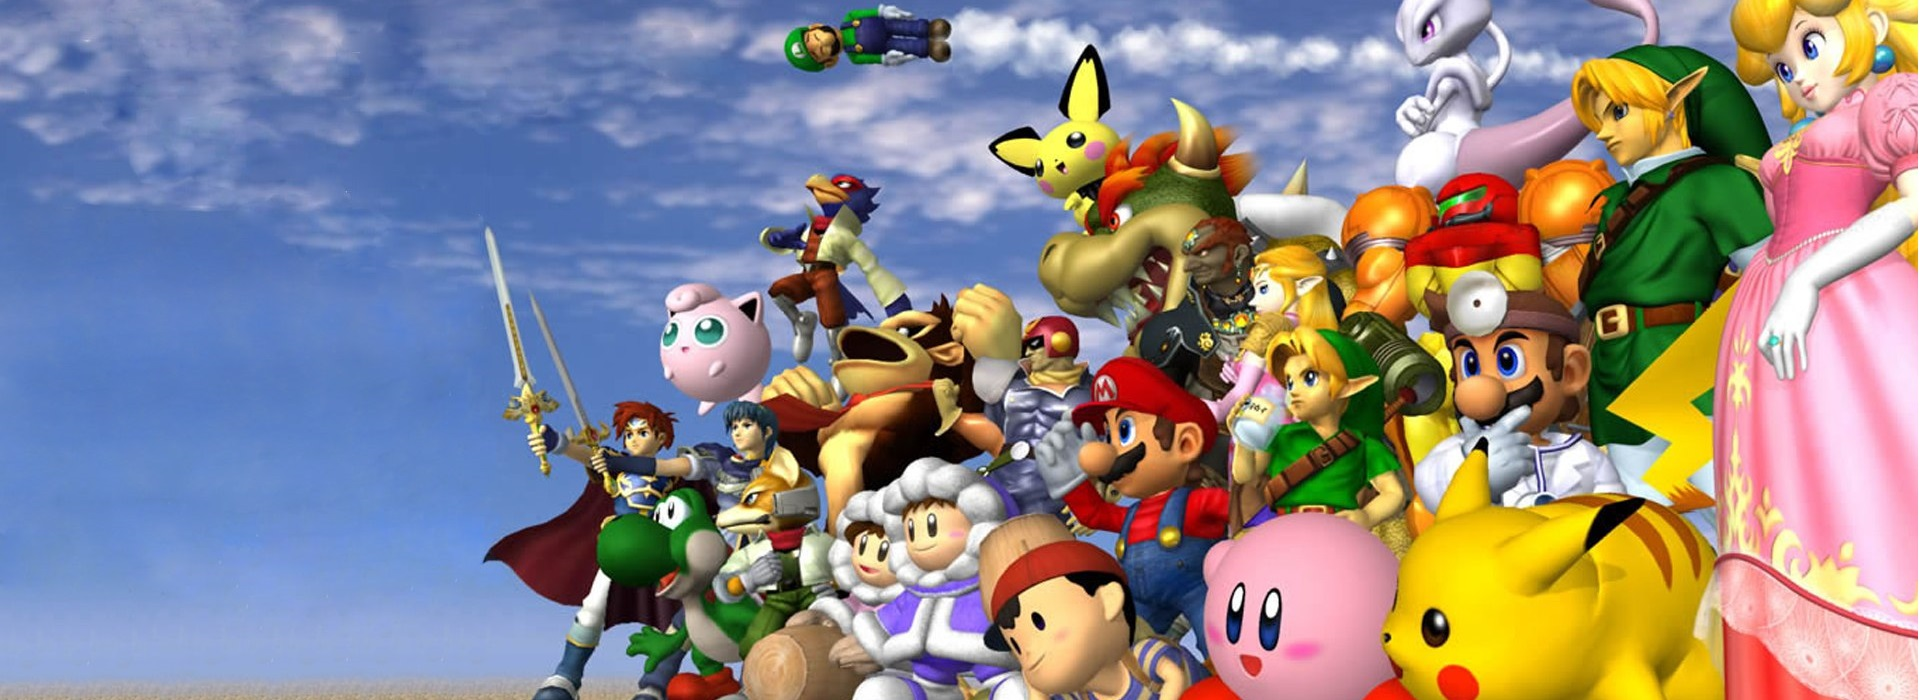 Nintendo-Game-Characters-Wallpaper-1920×1080